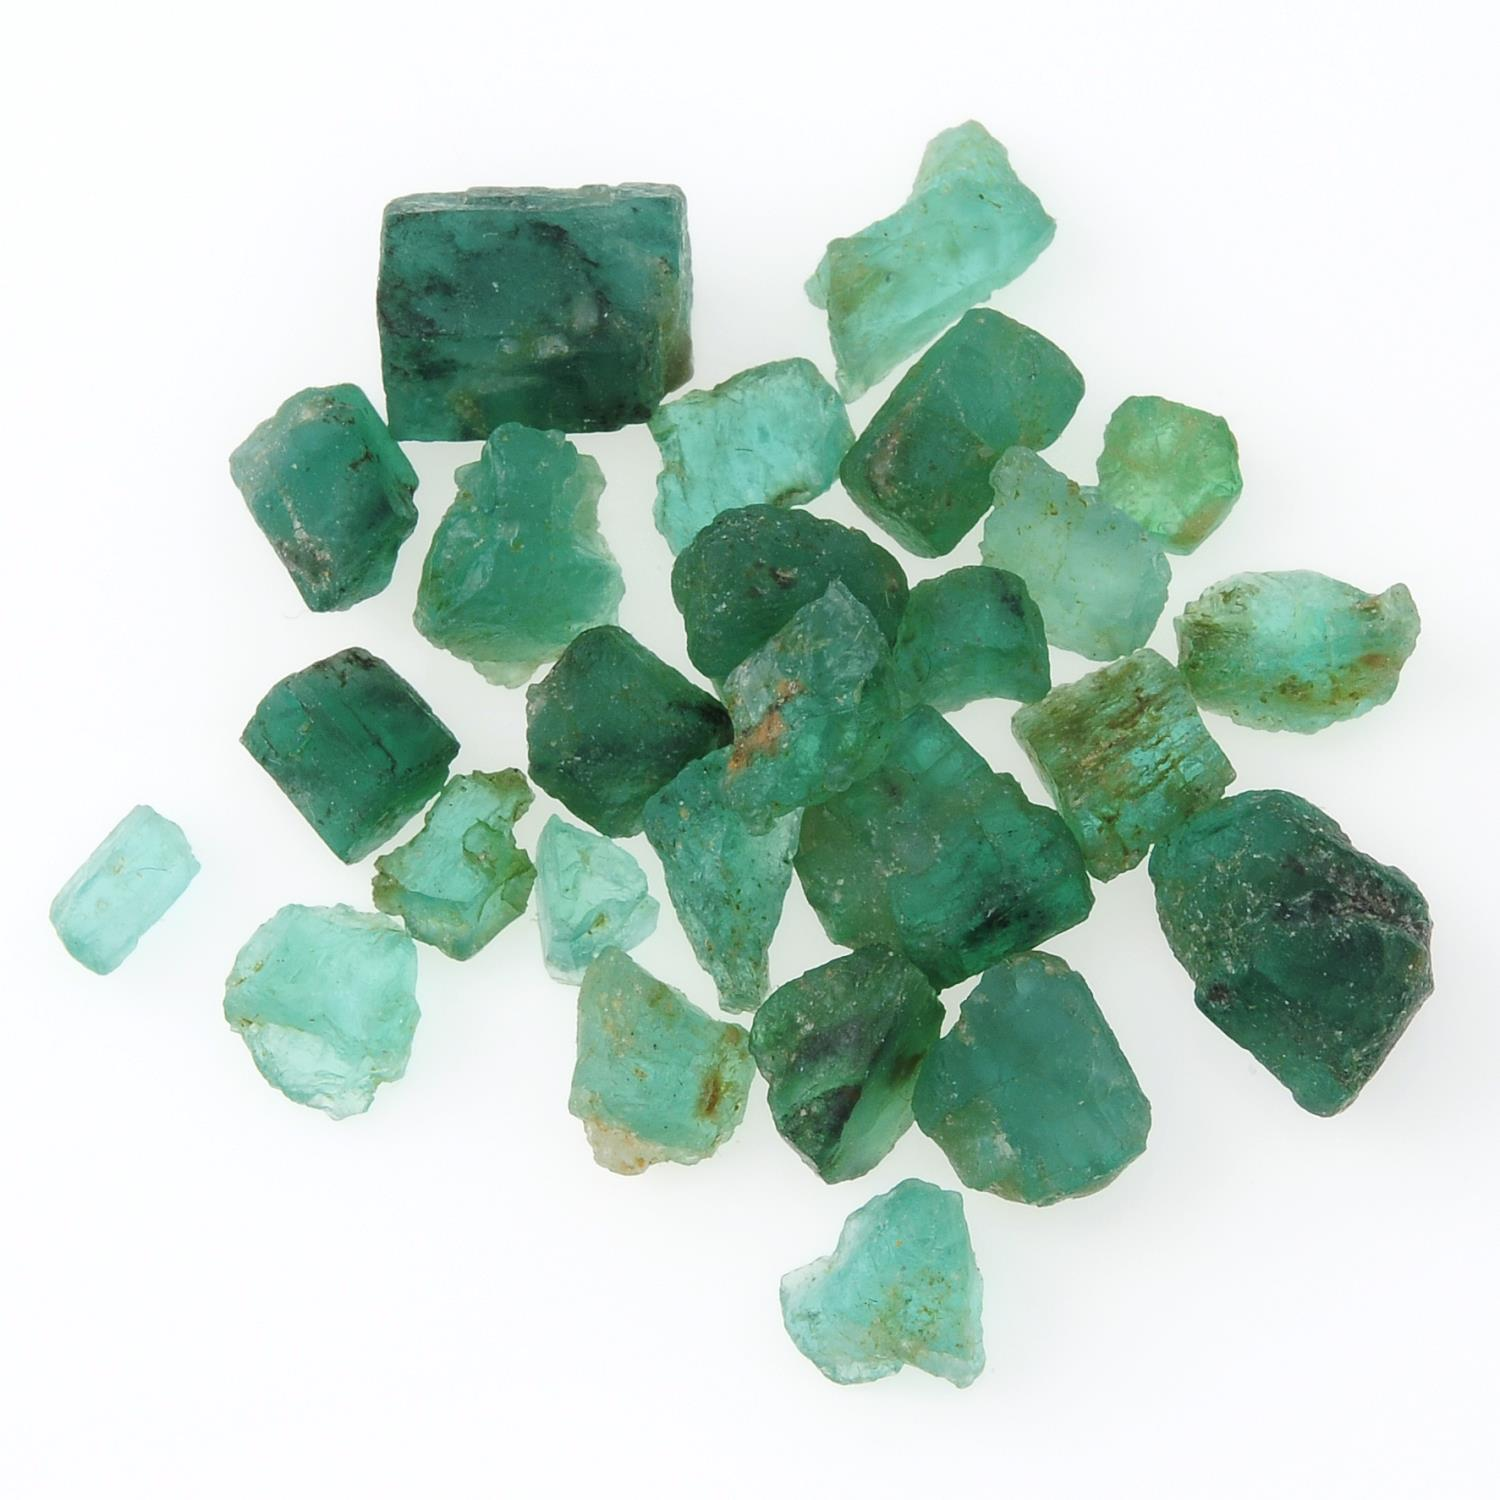 A selection of rough emeralds.